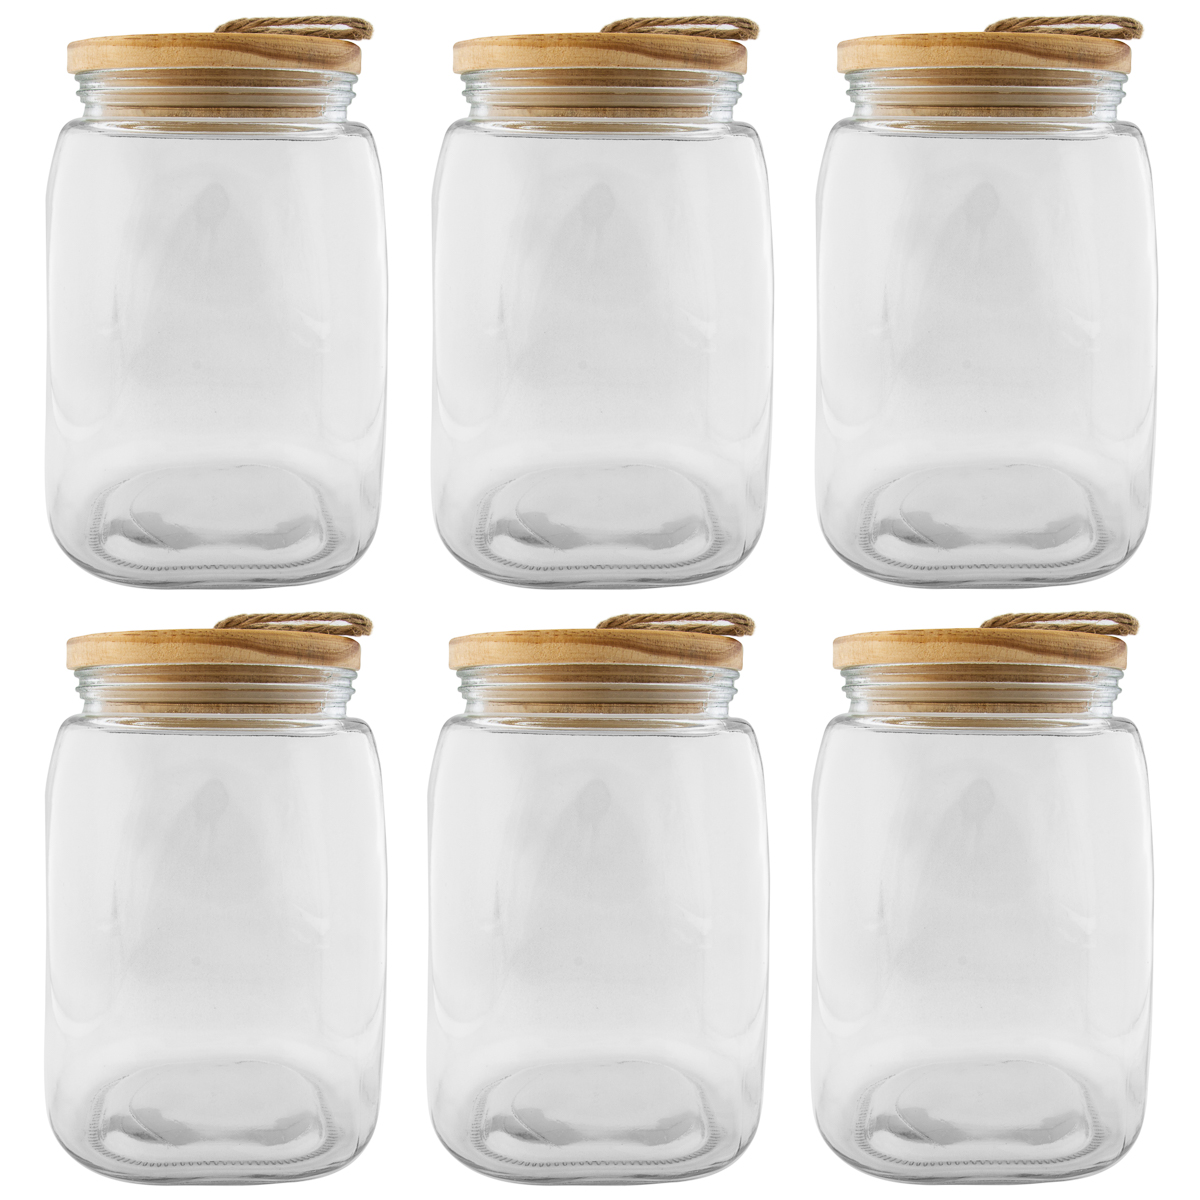 Blue Harbor (6 Pack) Glass Jar Set 91oz Storage Jars With Lids Insulated Kitchen Containers Large Bulk by Blue Harbor